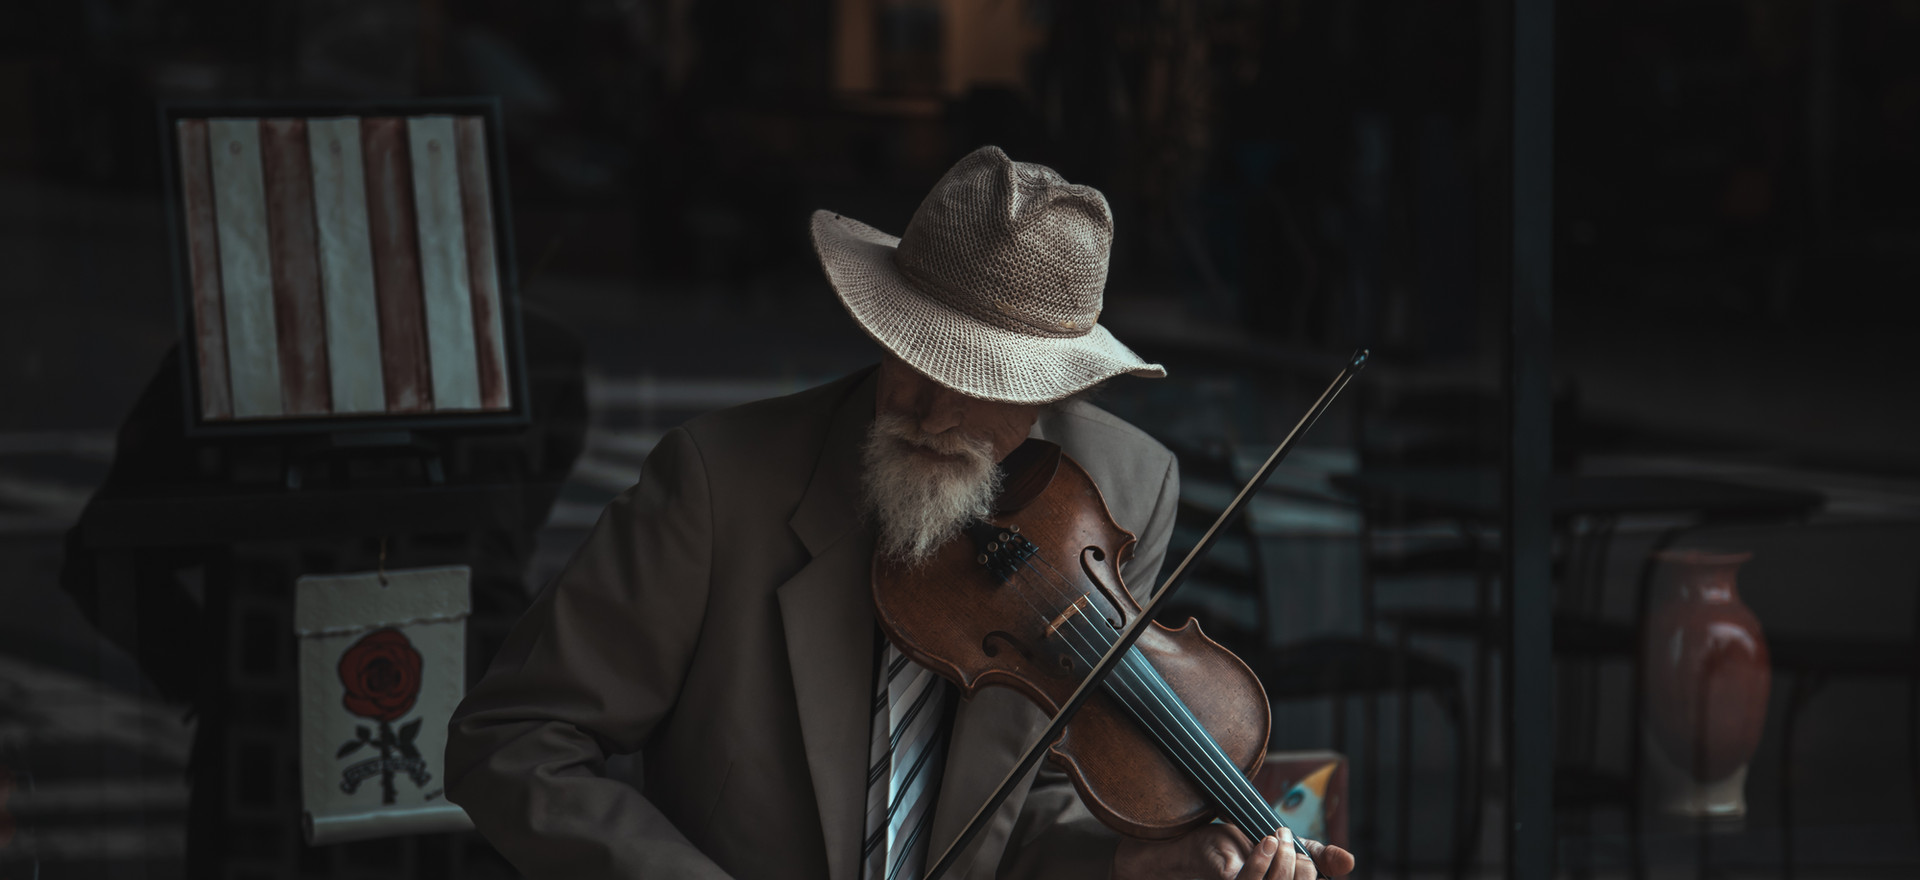 Fiddler of Haywood St.